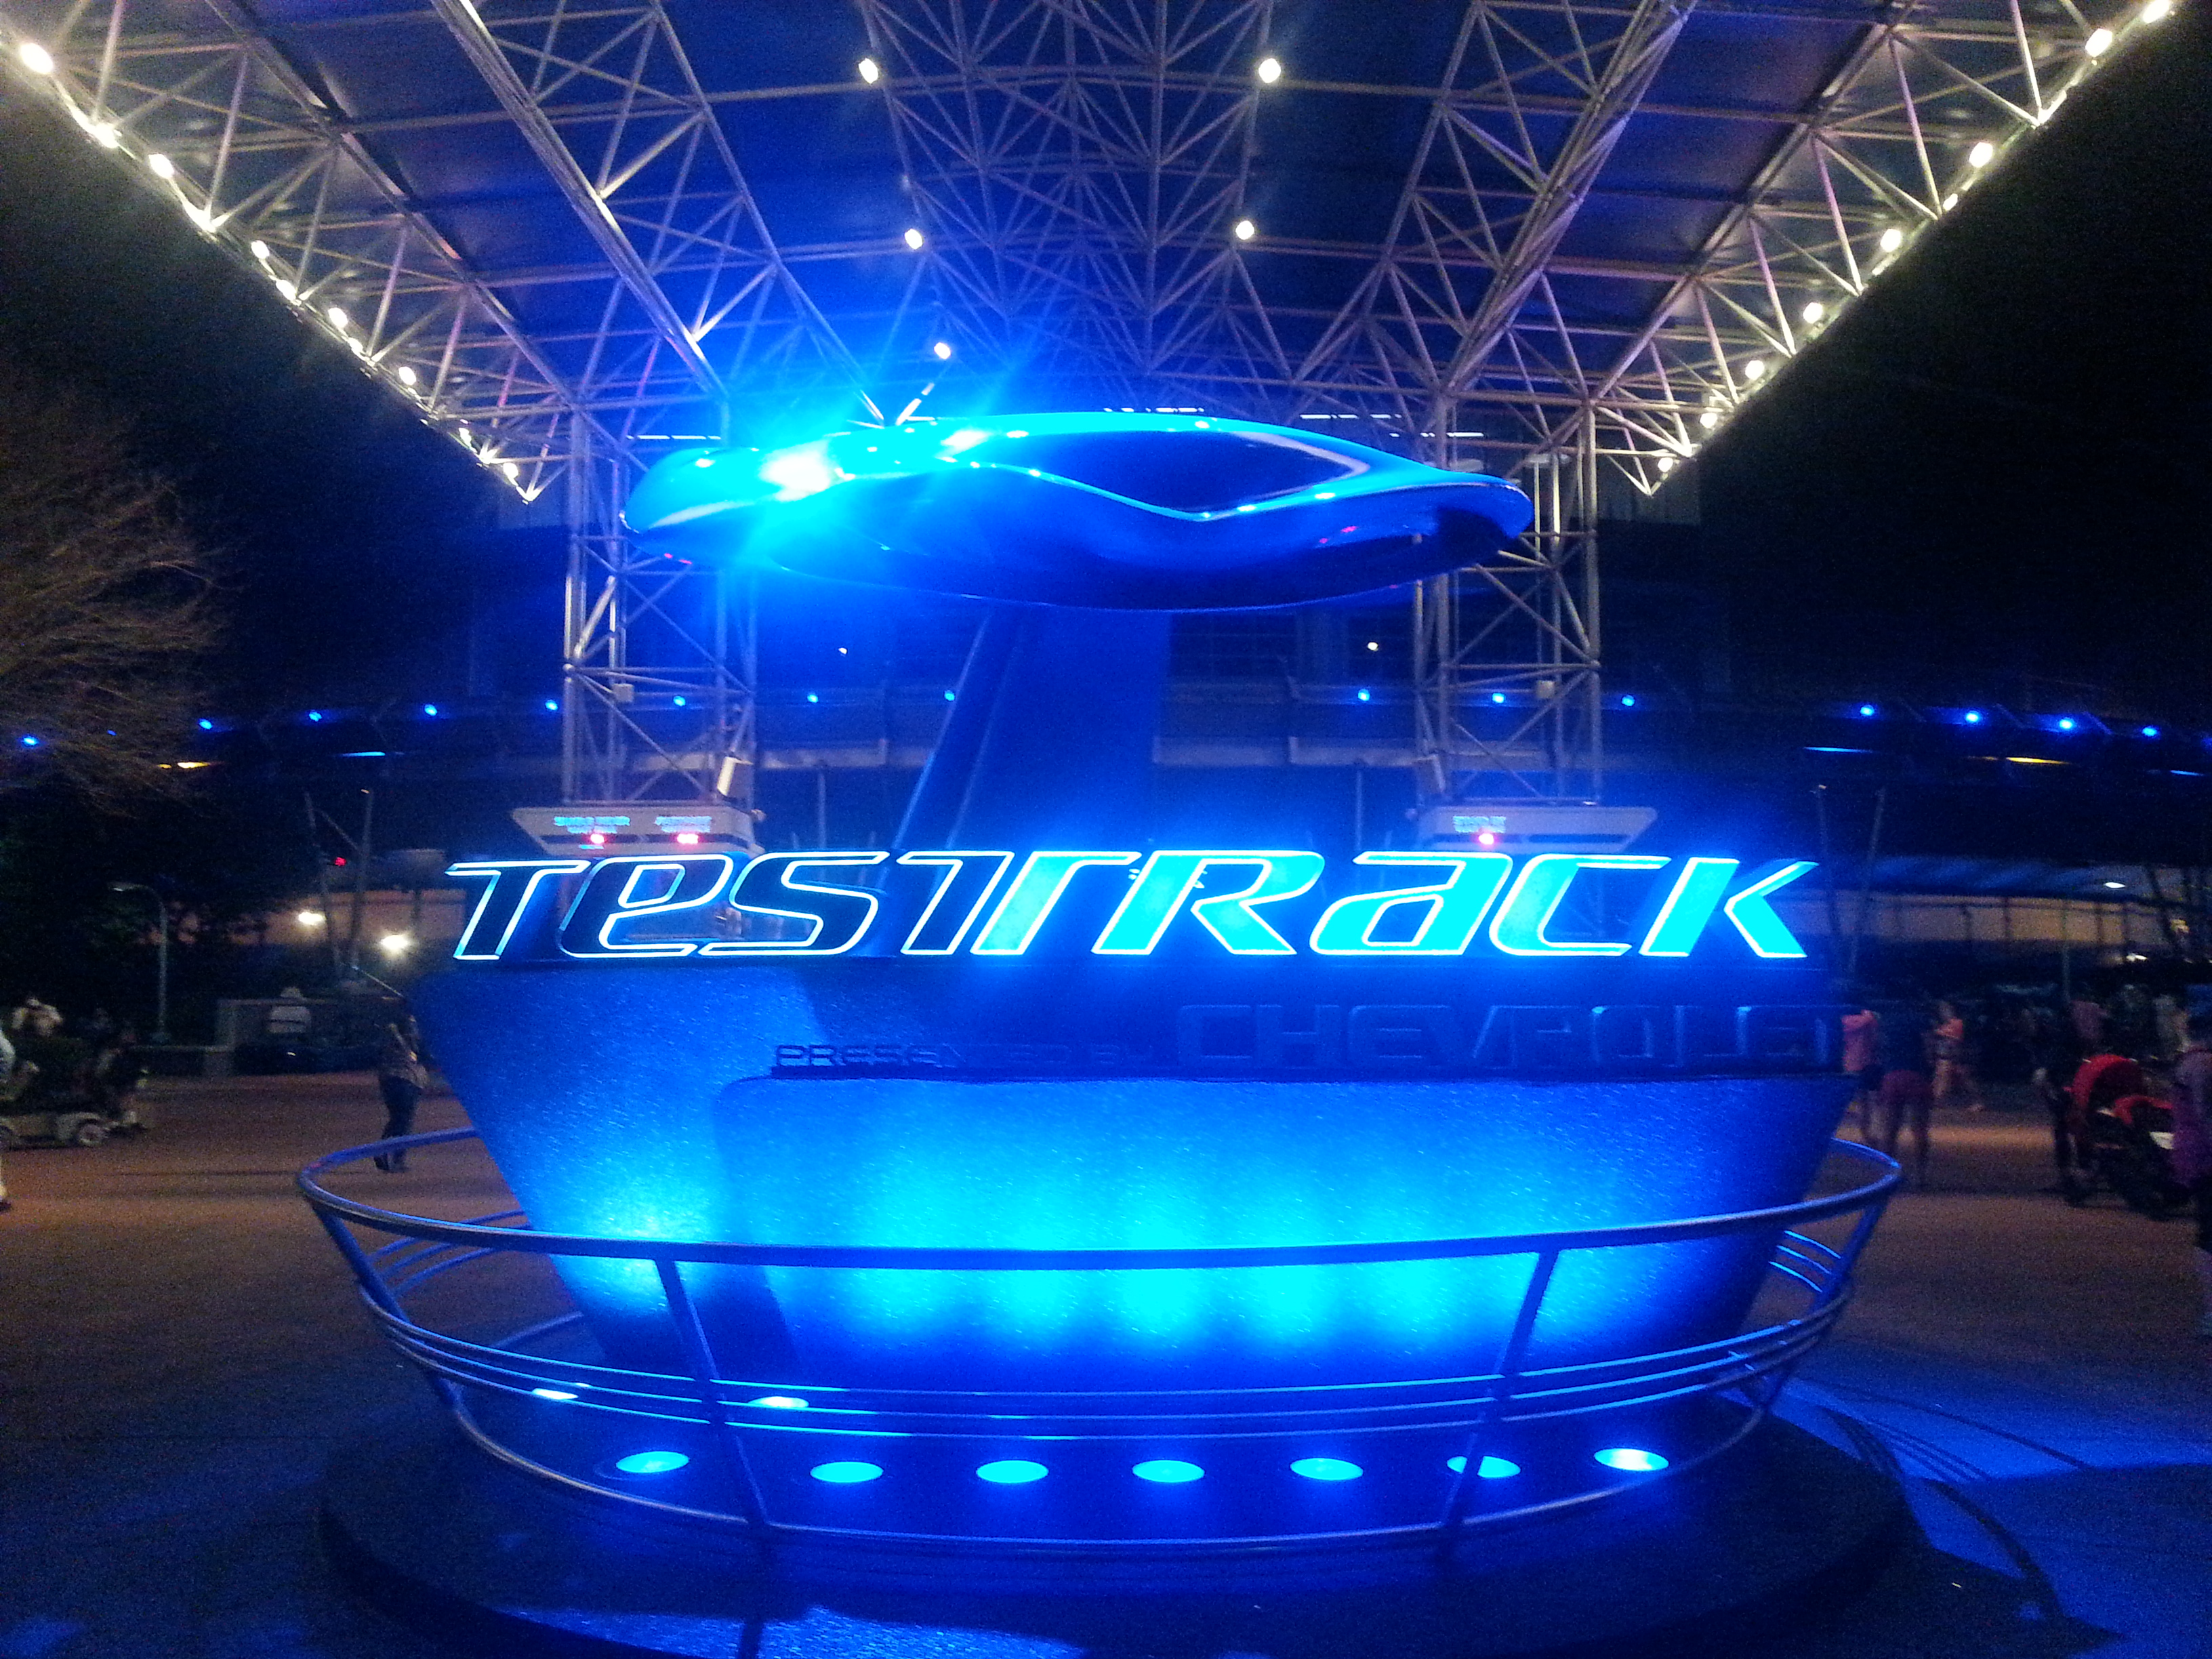 Terrific Tuesdays: Test Track